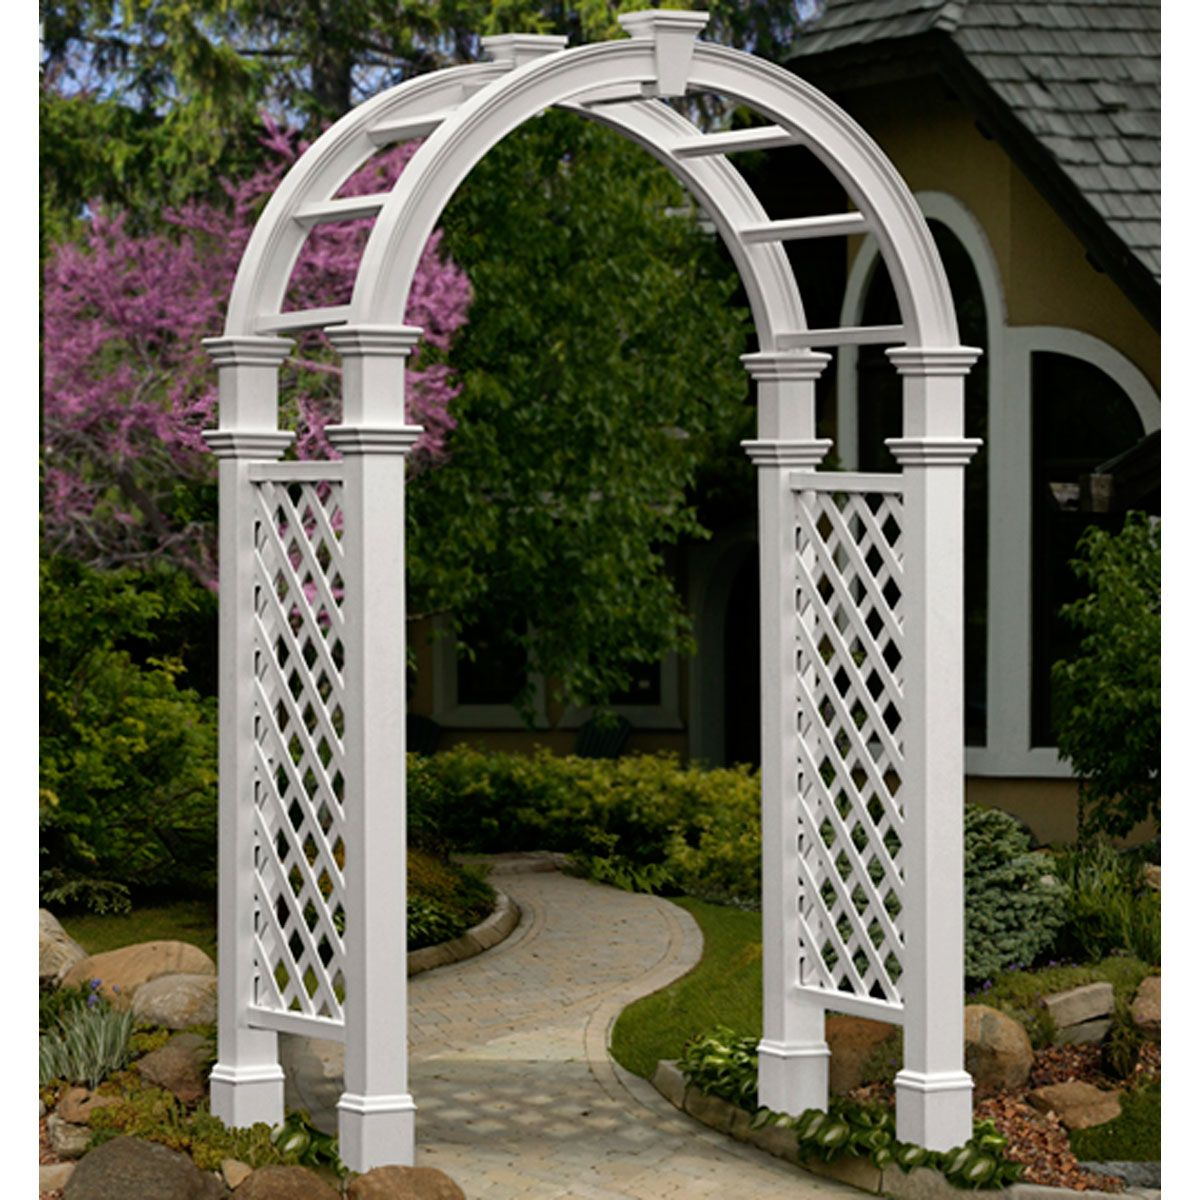 60 Inch W X 28 Inch D X 102 1 4 Inch H Nantucket Legacy Arbor With